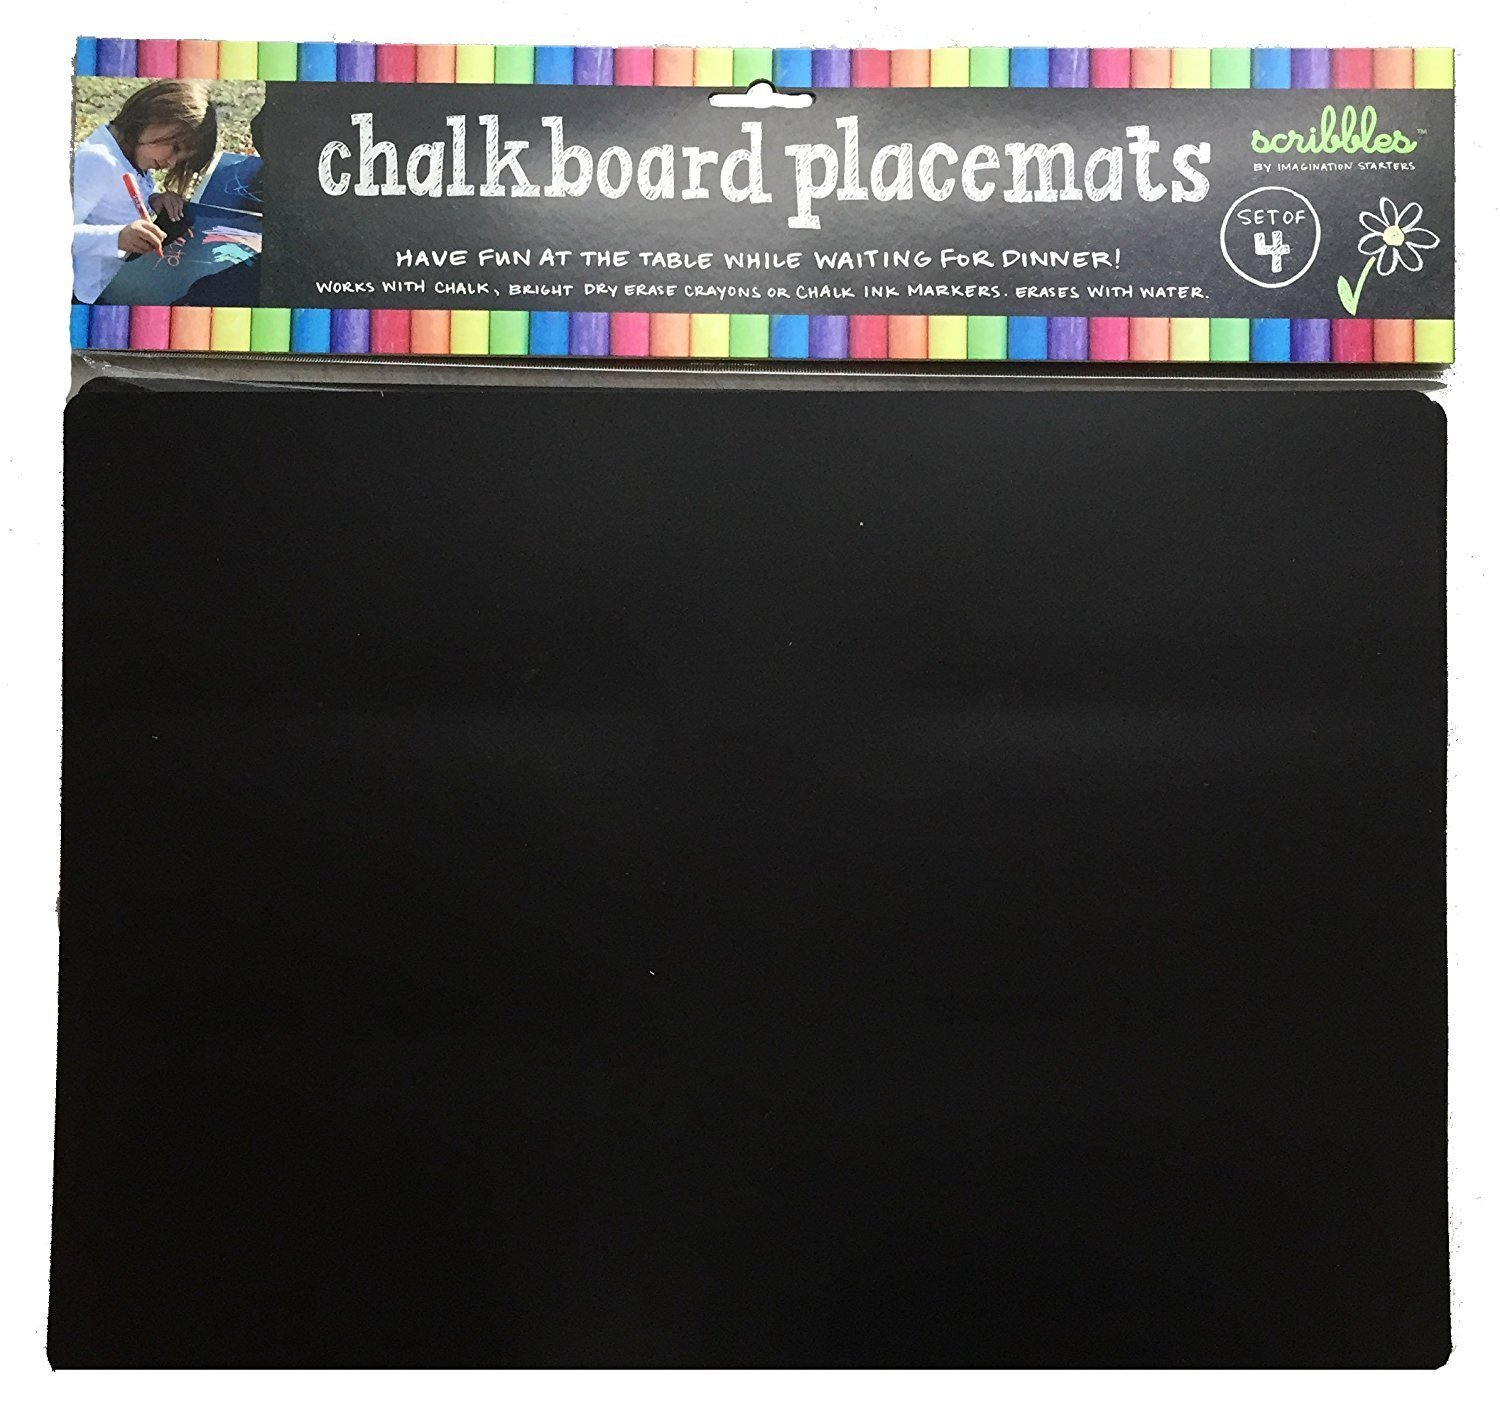 "Imagination Starters Reusable Washable 12"" x 17"" Flexi-mat Chalkboard Placemats- Draw, Color, Doodle - Set of 4"